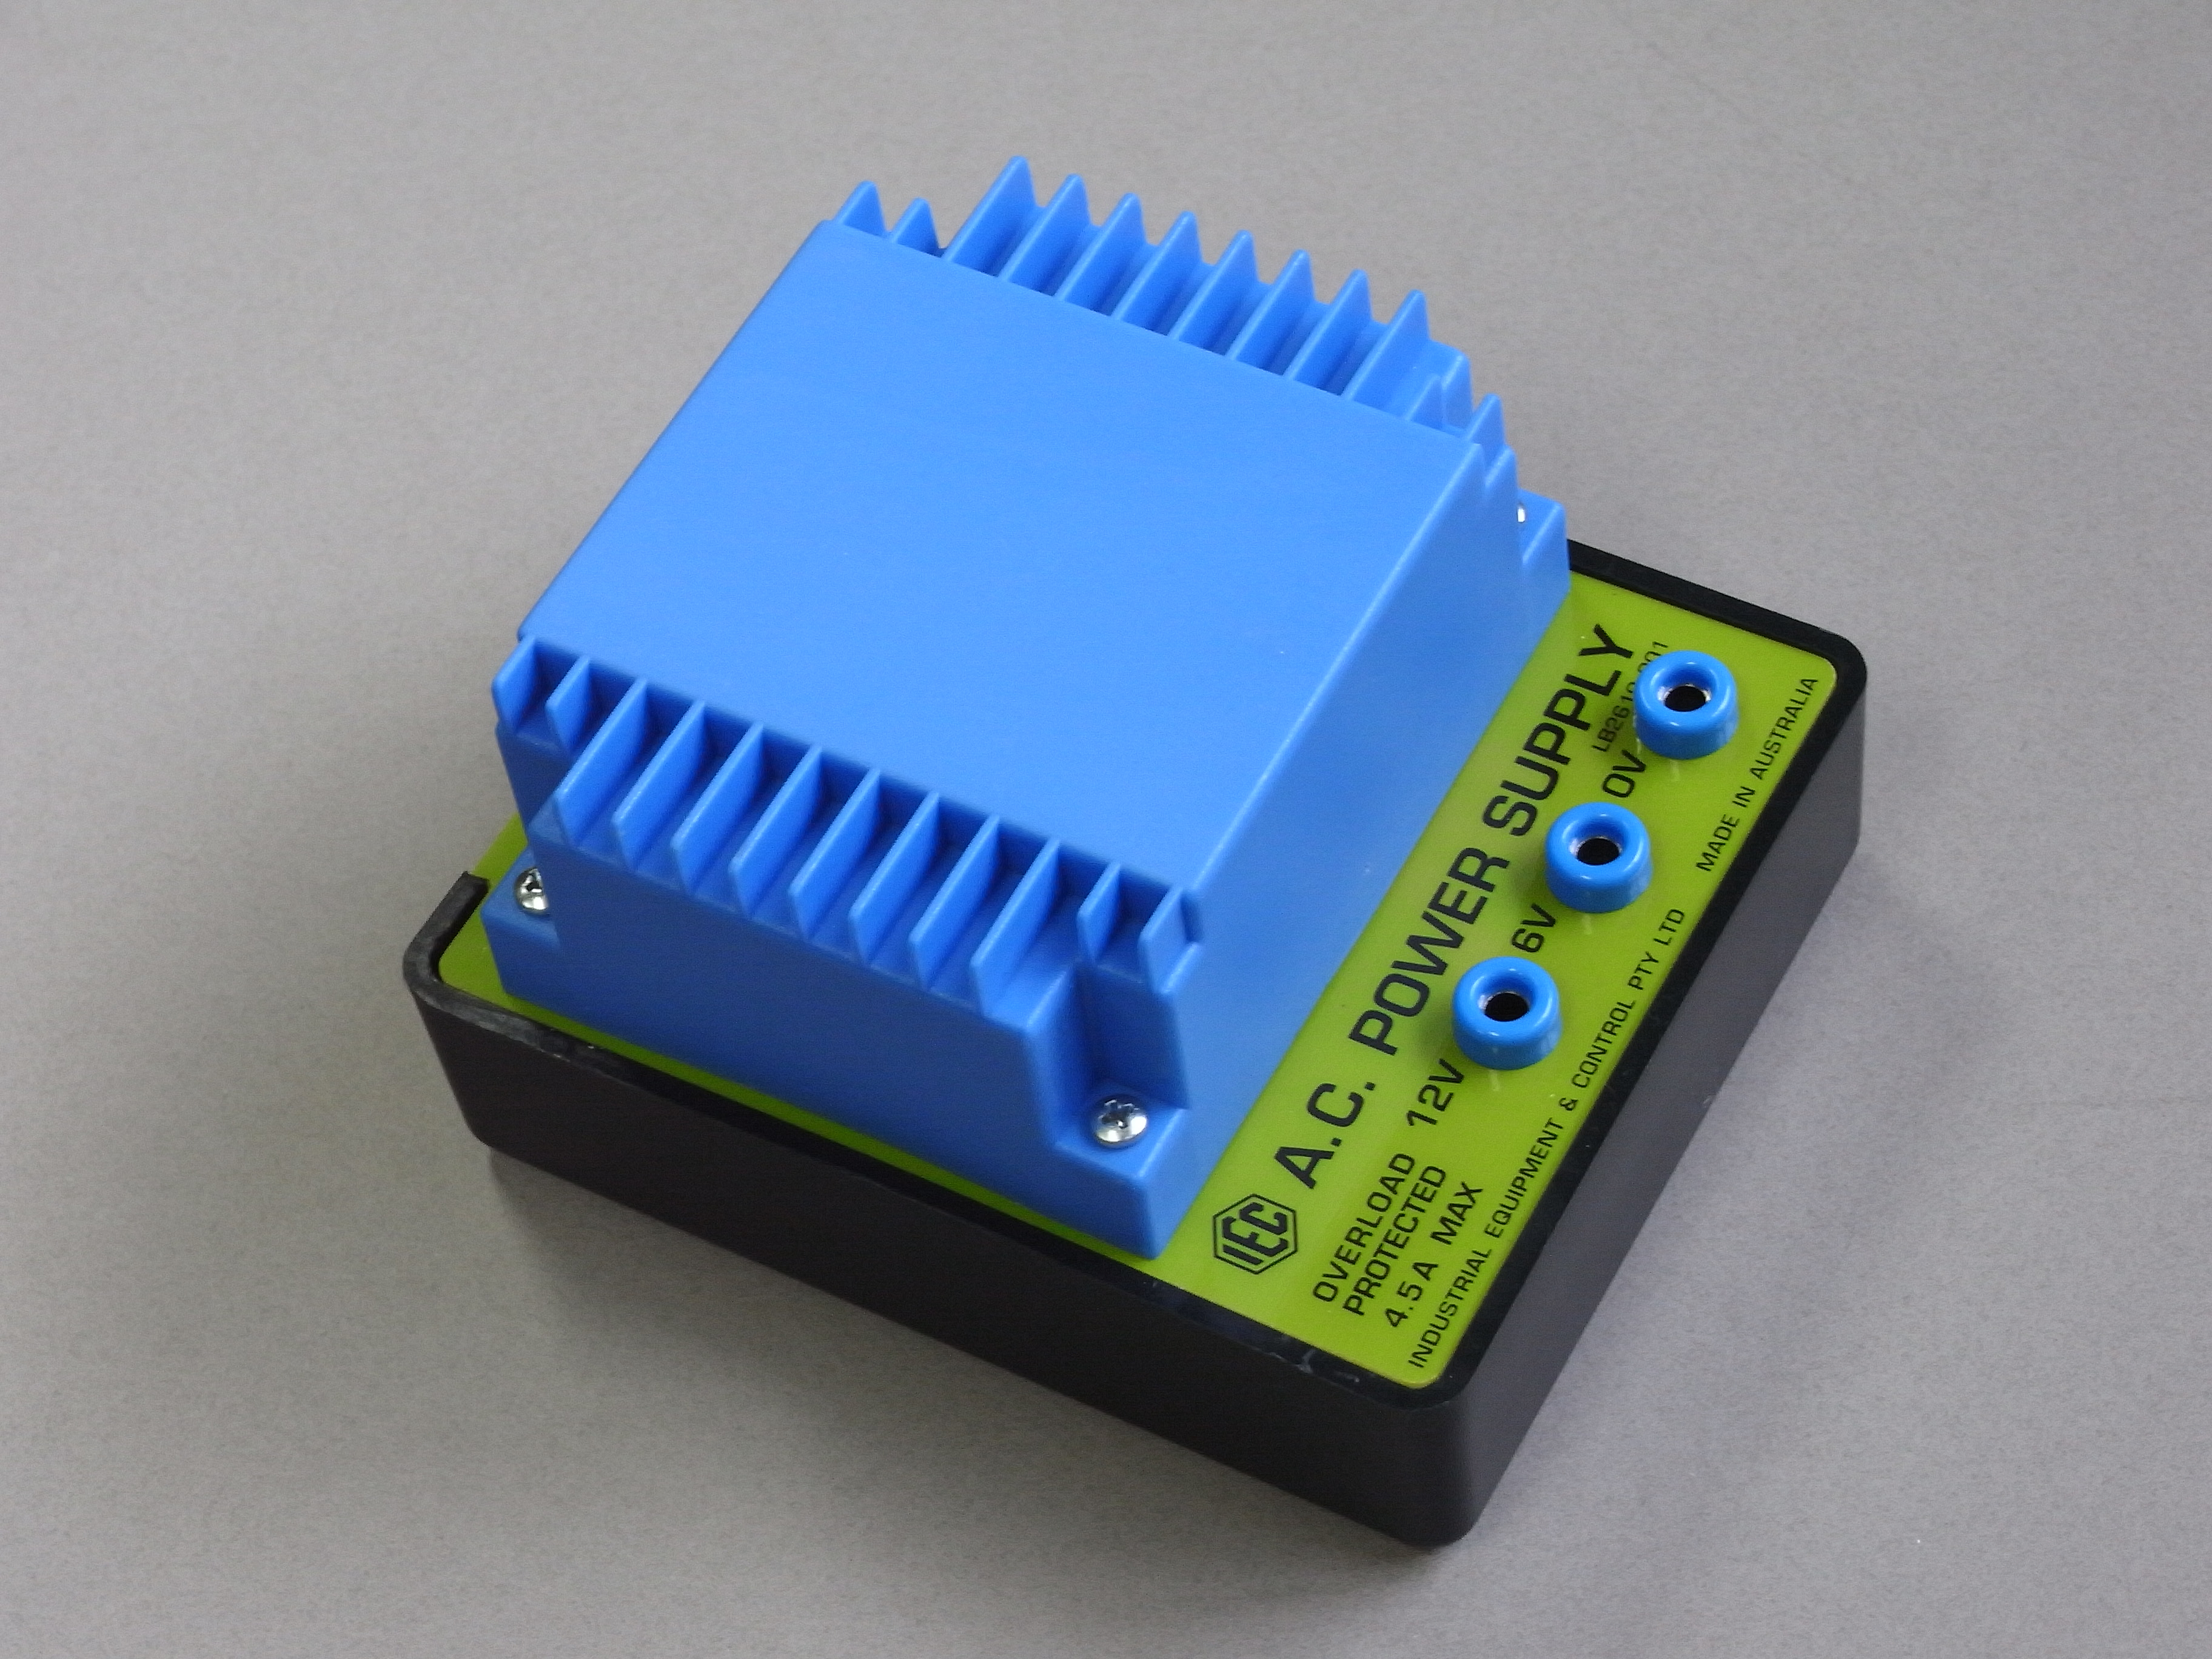 Power Supply Module, 240VAC in, 6VAC/12VAC out (4A max)